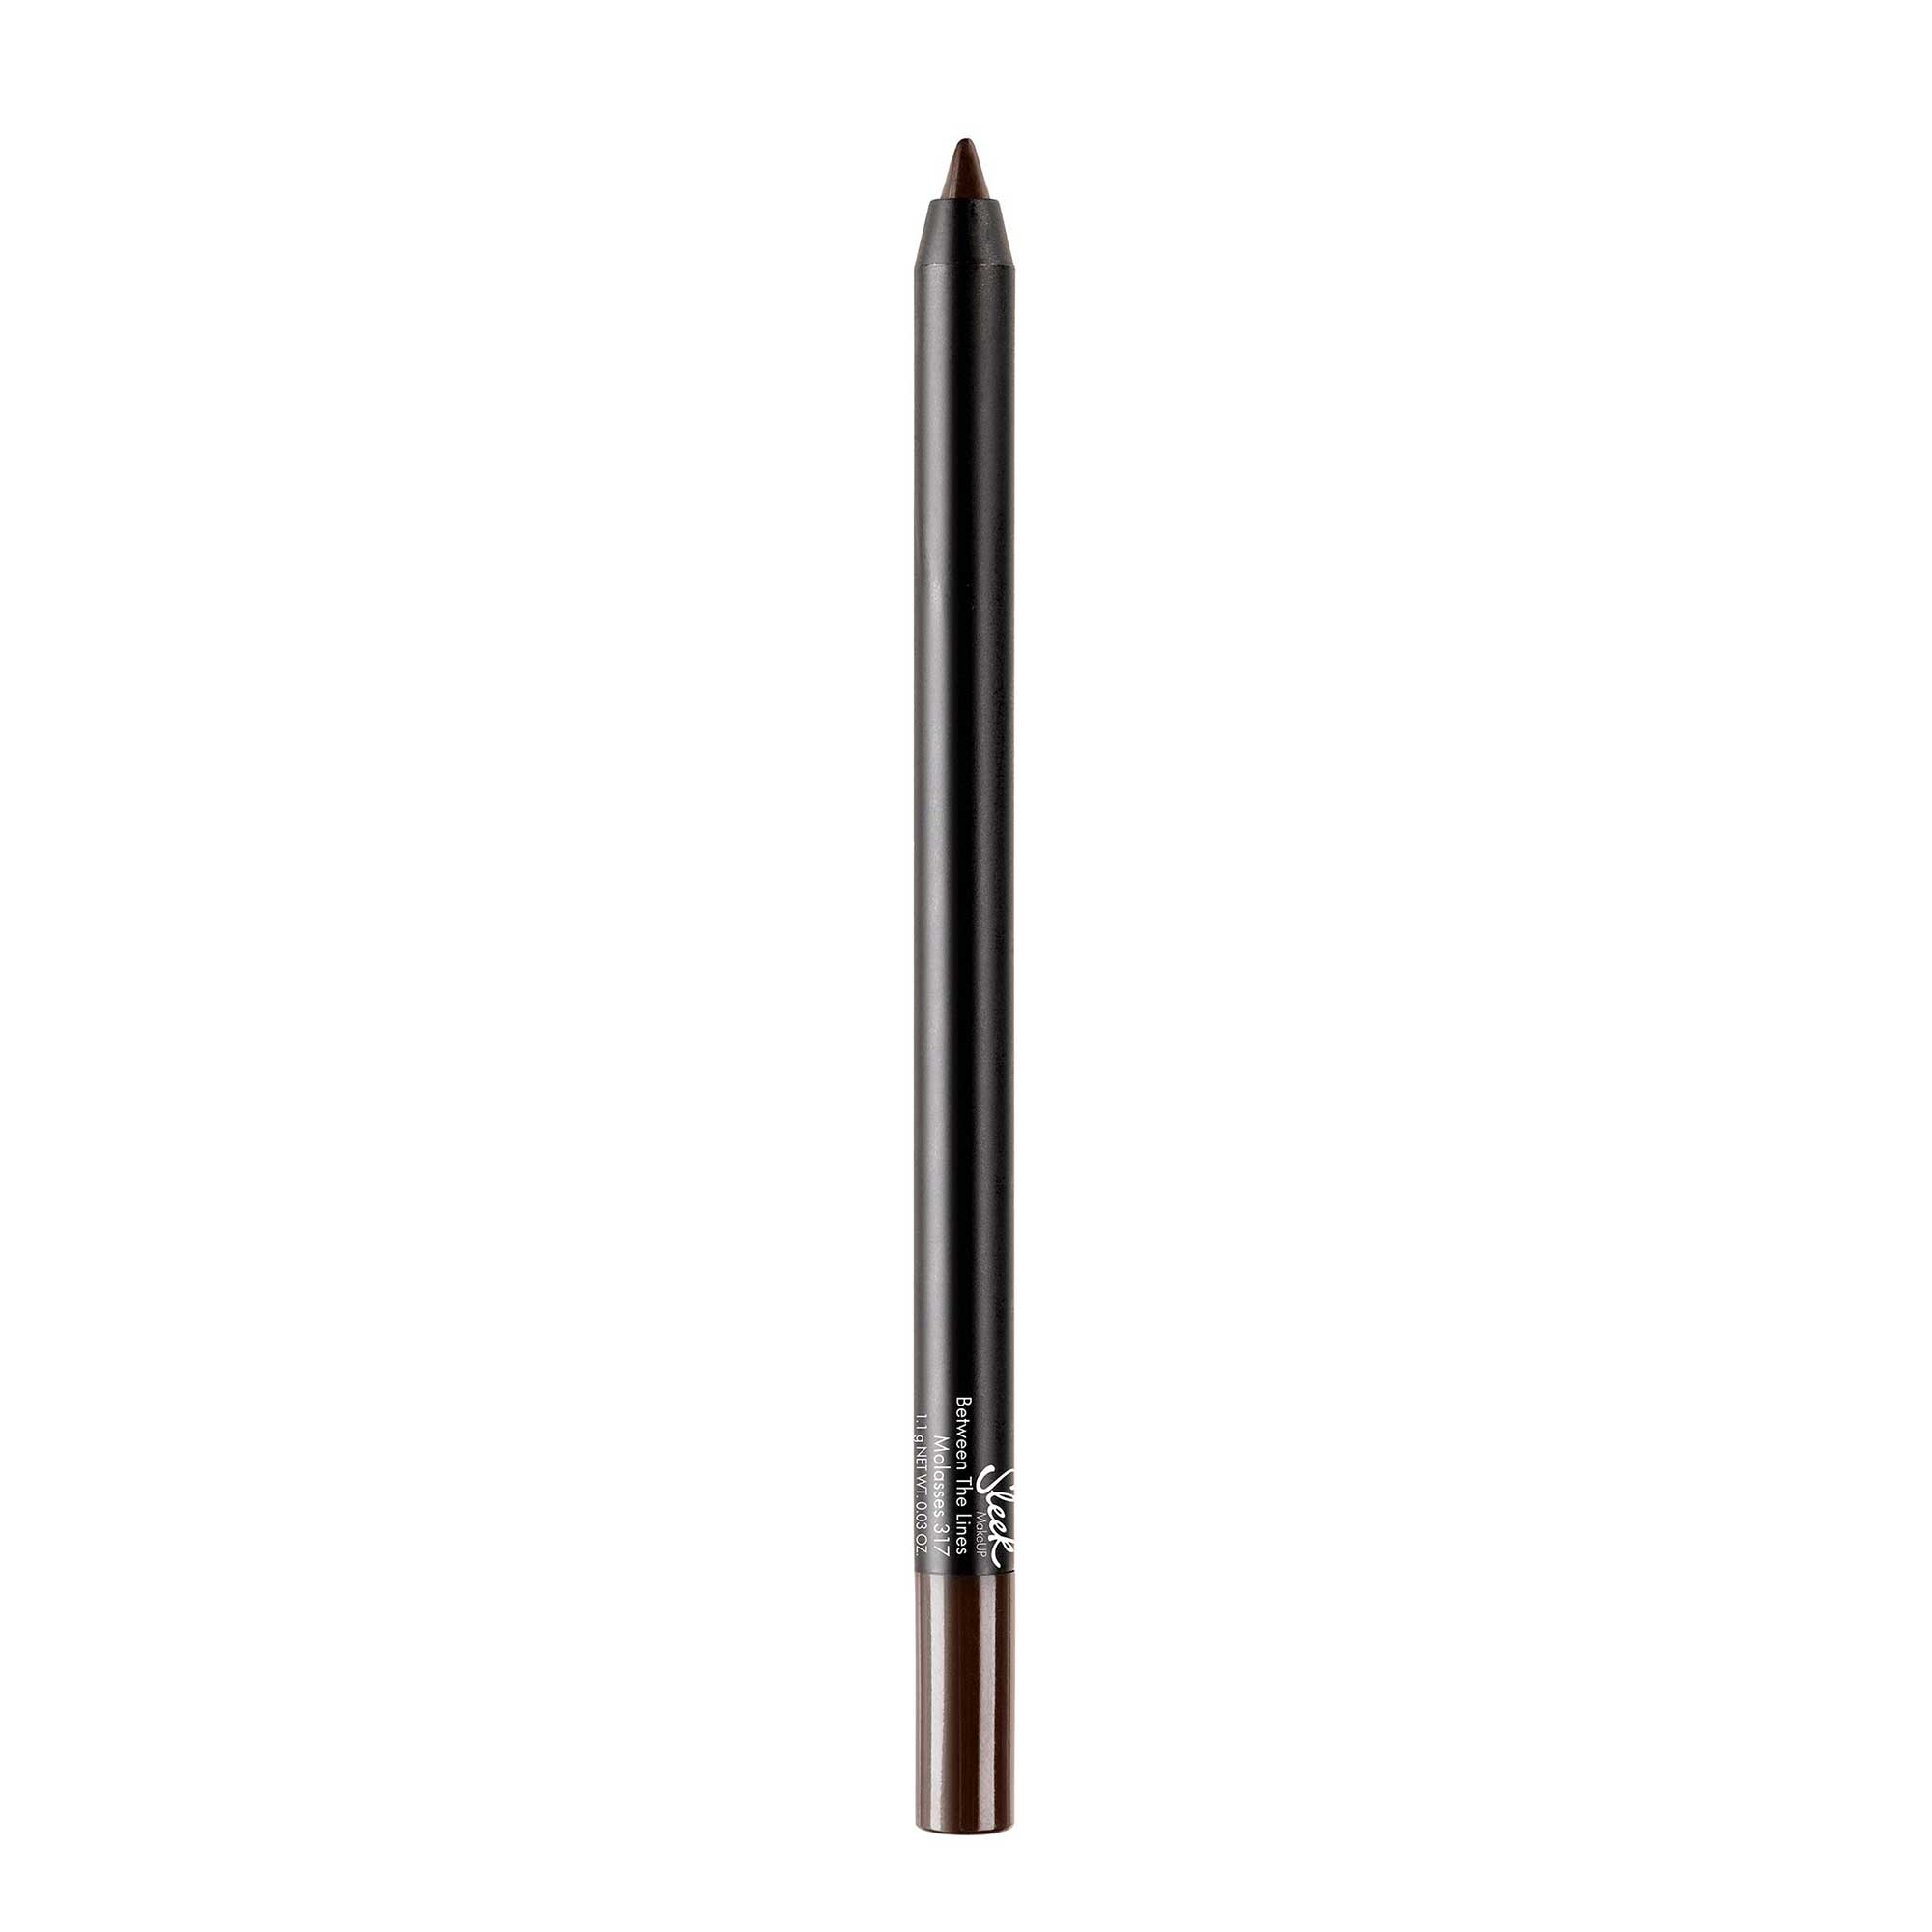 Between The Lines Liner Molasses Sleek Makeup